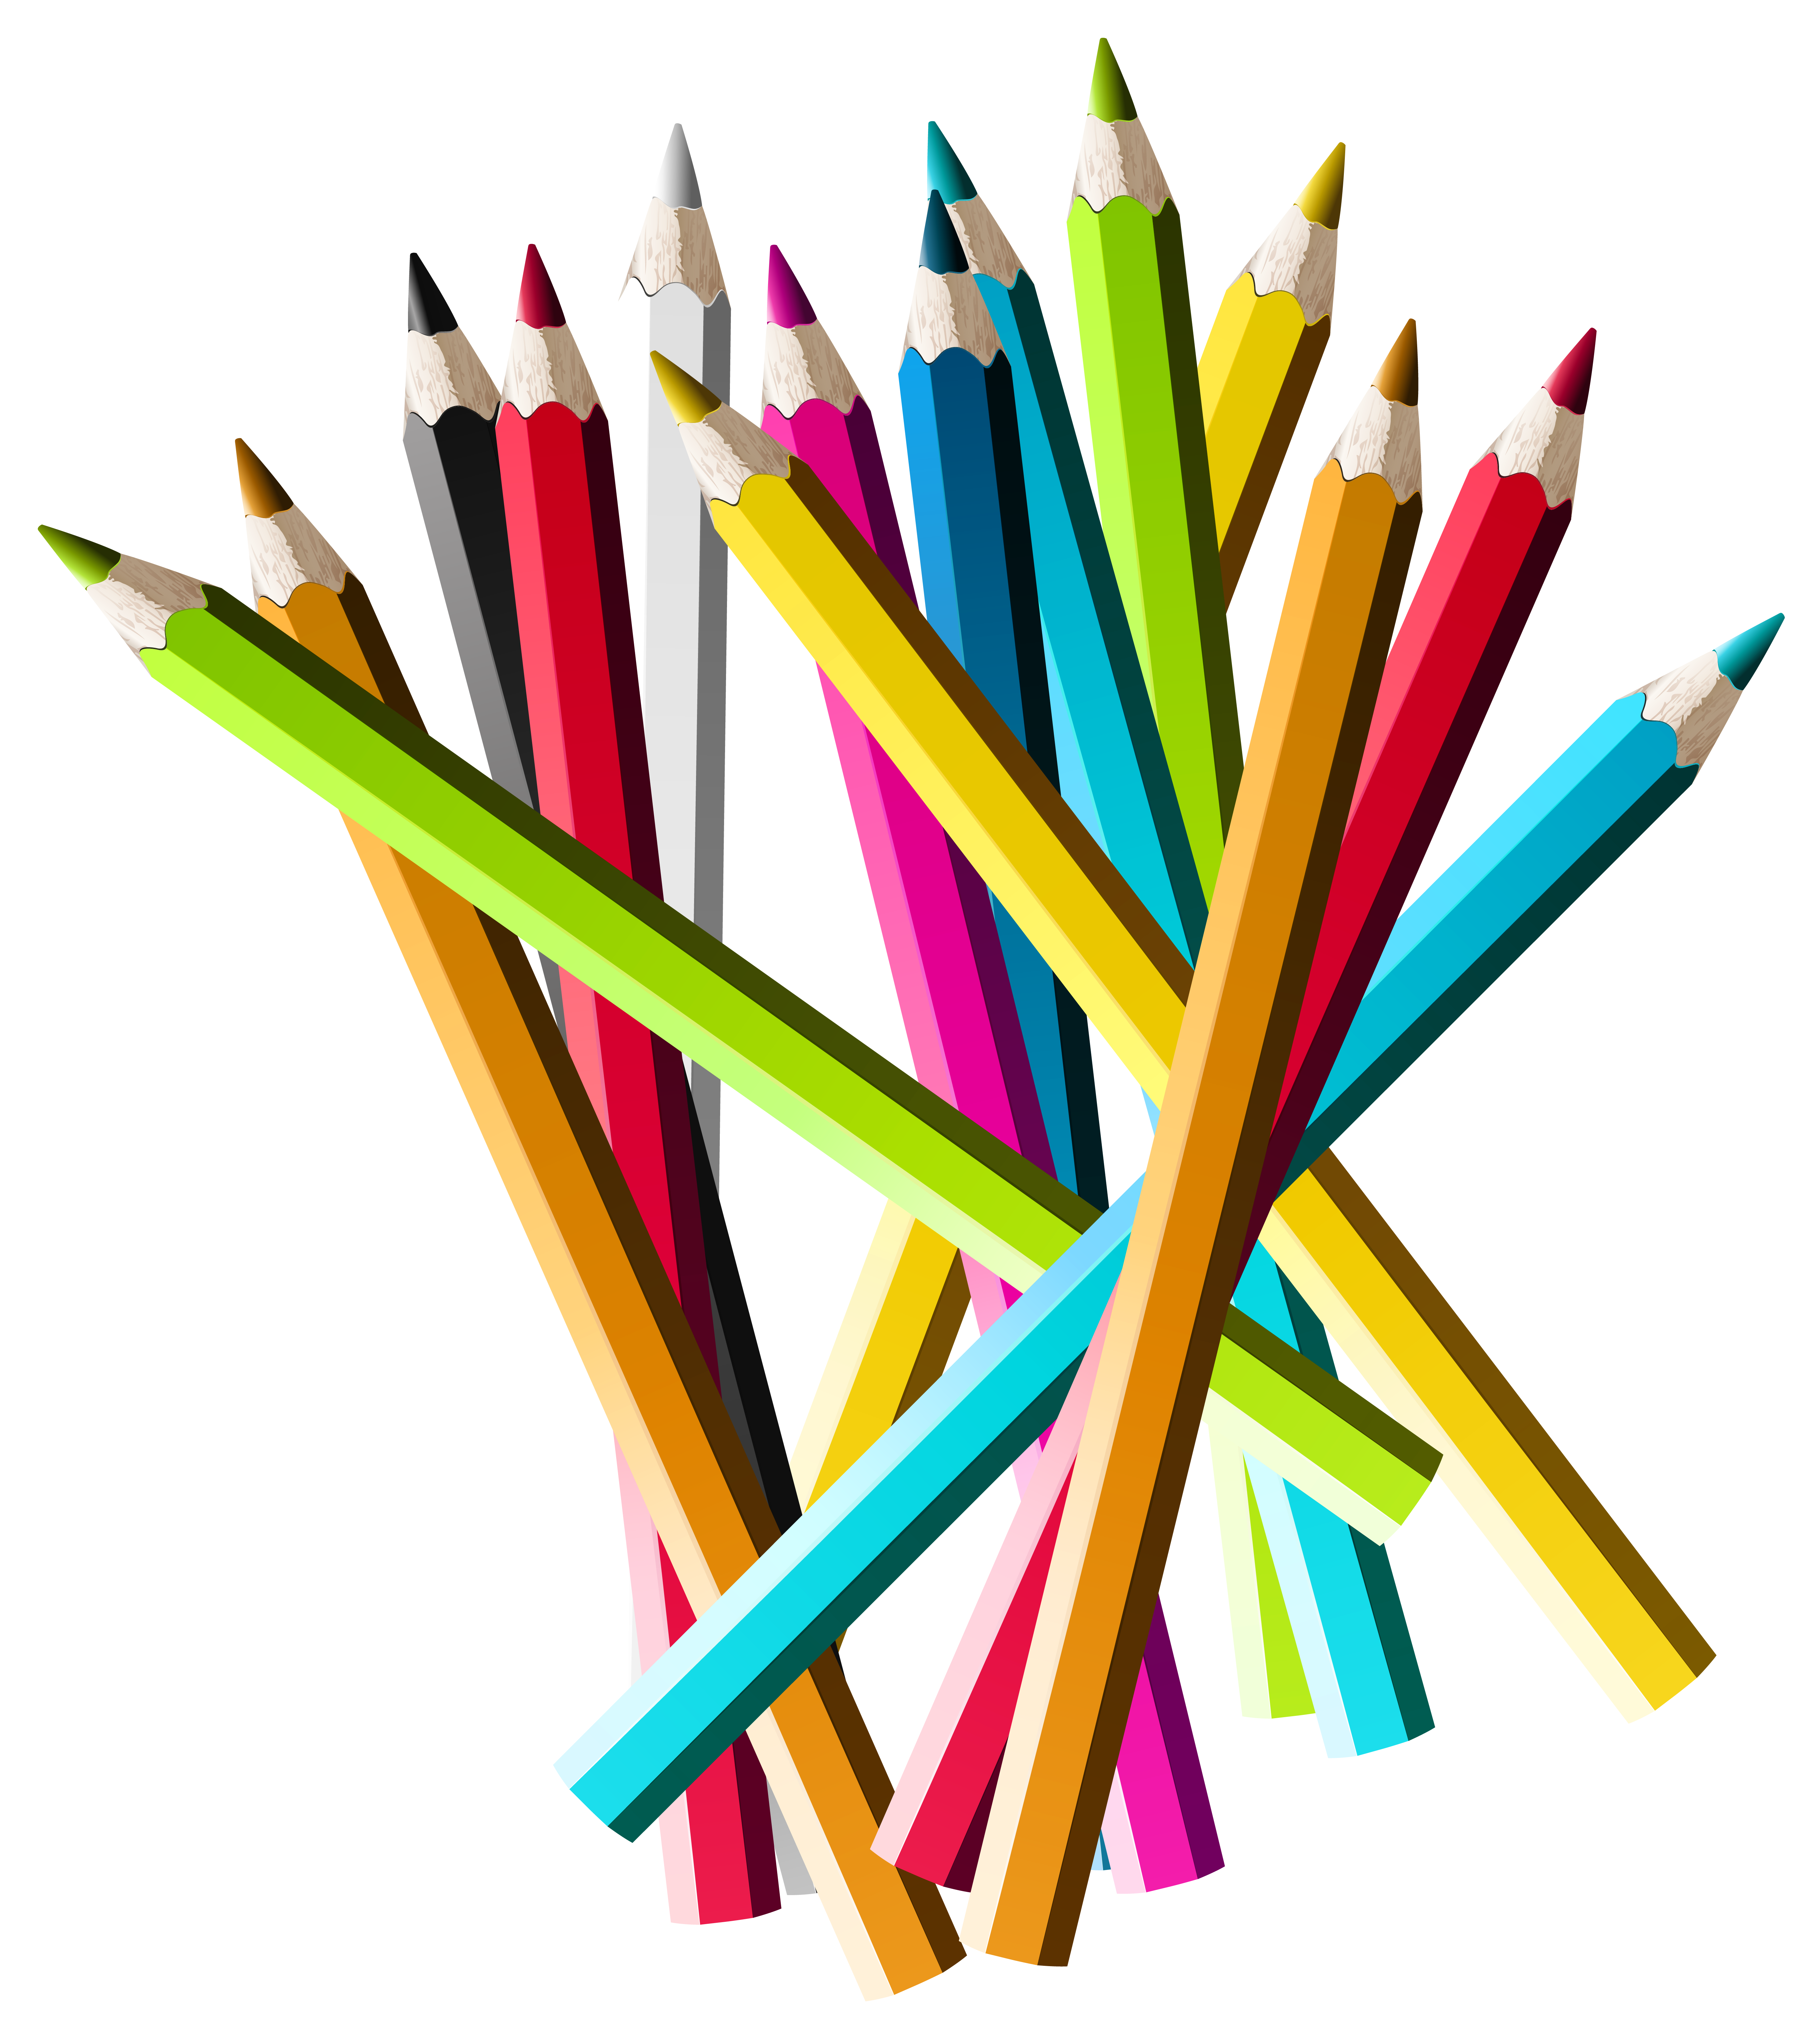 picture of pencils clipart best